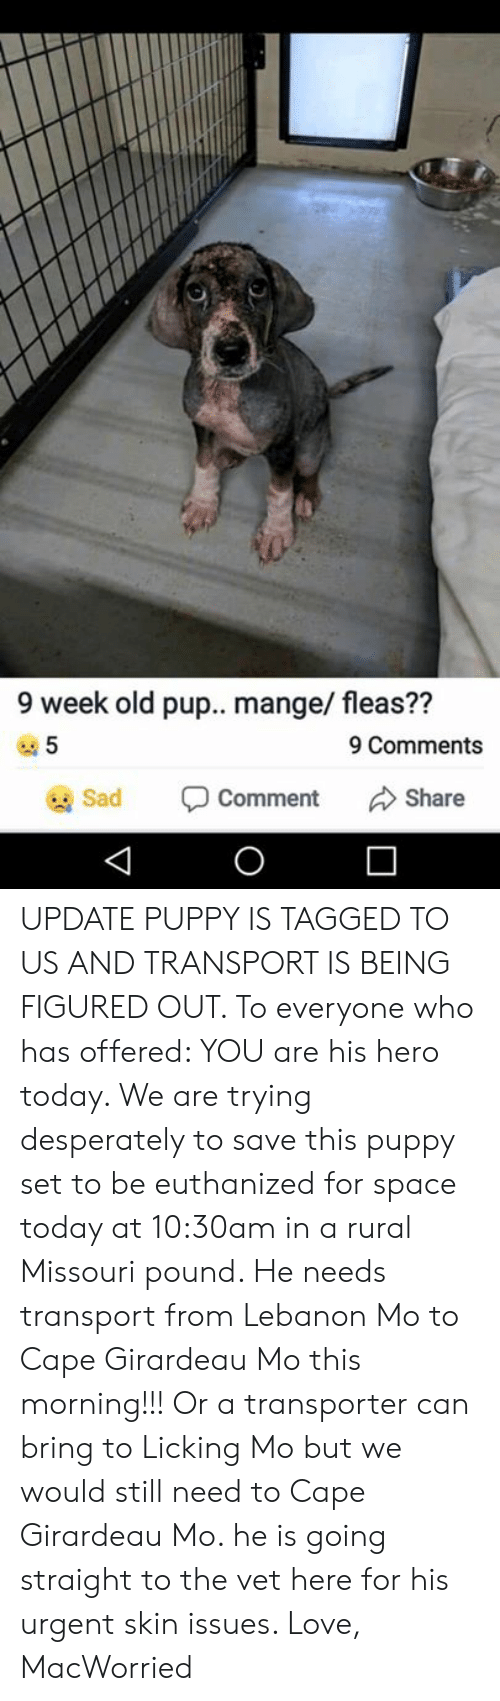 Girardeau: 9 week old pup.. mange/ fleas??  5  9 Comments  Sad  Share  Comment UPDATE PUPPY IS TAGGED TO US AND TRANSPORT IS BEING FIGURED OUT. To everyone who has offered: YOU are his hero today.   We are trying desperately to save this puppy set to be euthanized for space today at 10:30am in a rural Missouri pound. He needs transport from Lebanon Mo to Cape Girardeau Mo this morning!!! Or a transporter can bring to Licking Mo but we would still need to Cape Girardeau Mo. he is going straight to the vet here for his urgent skin issues.   Love, MacWorried